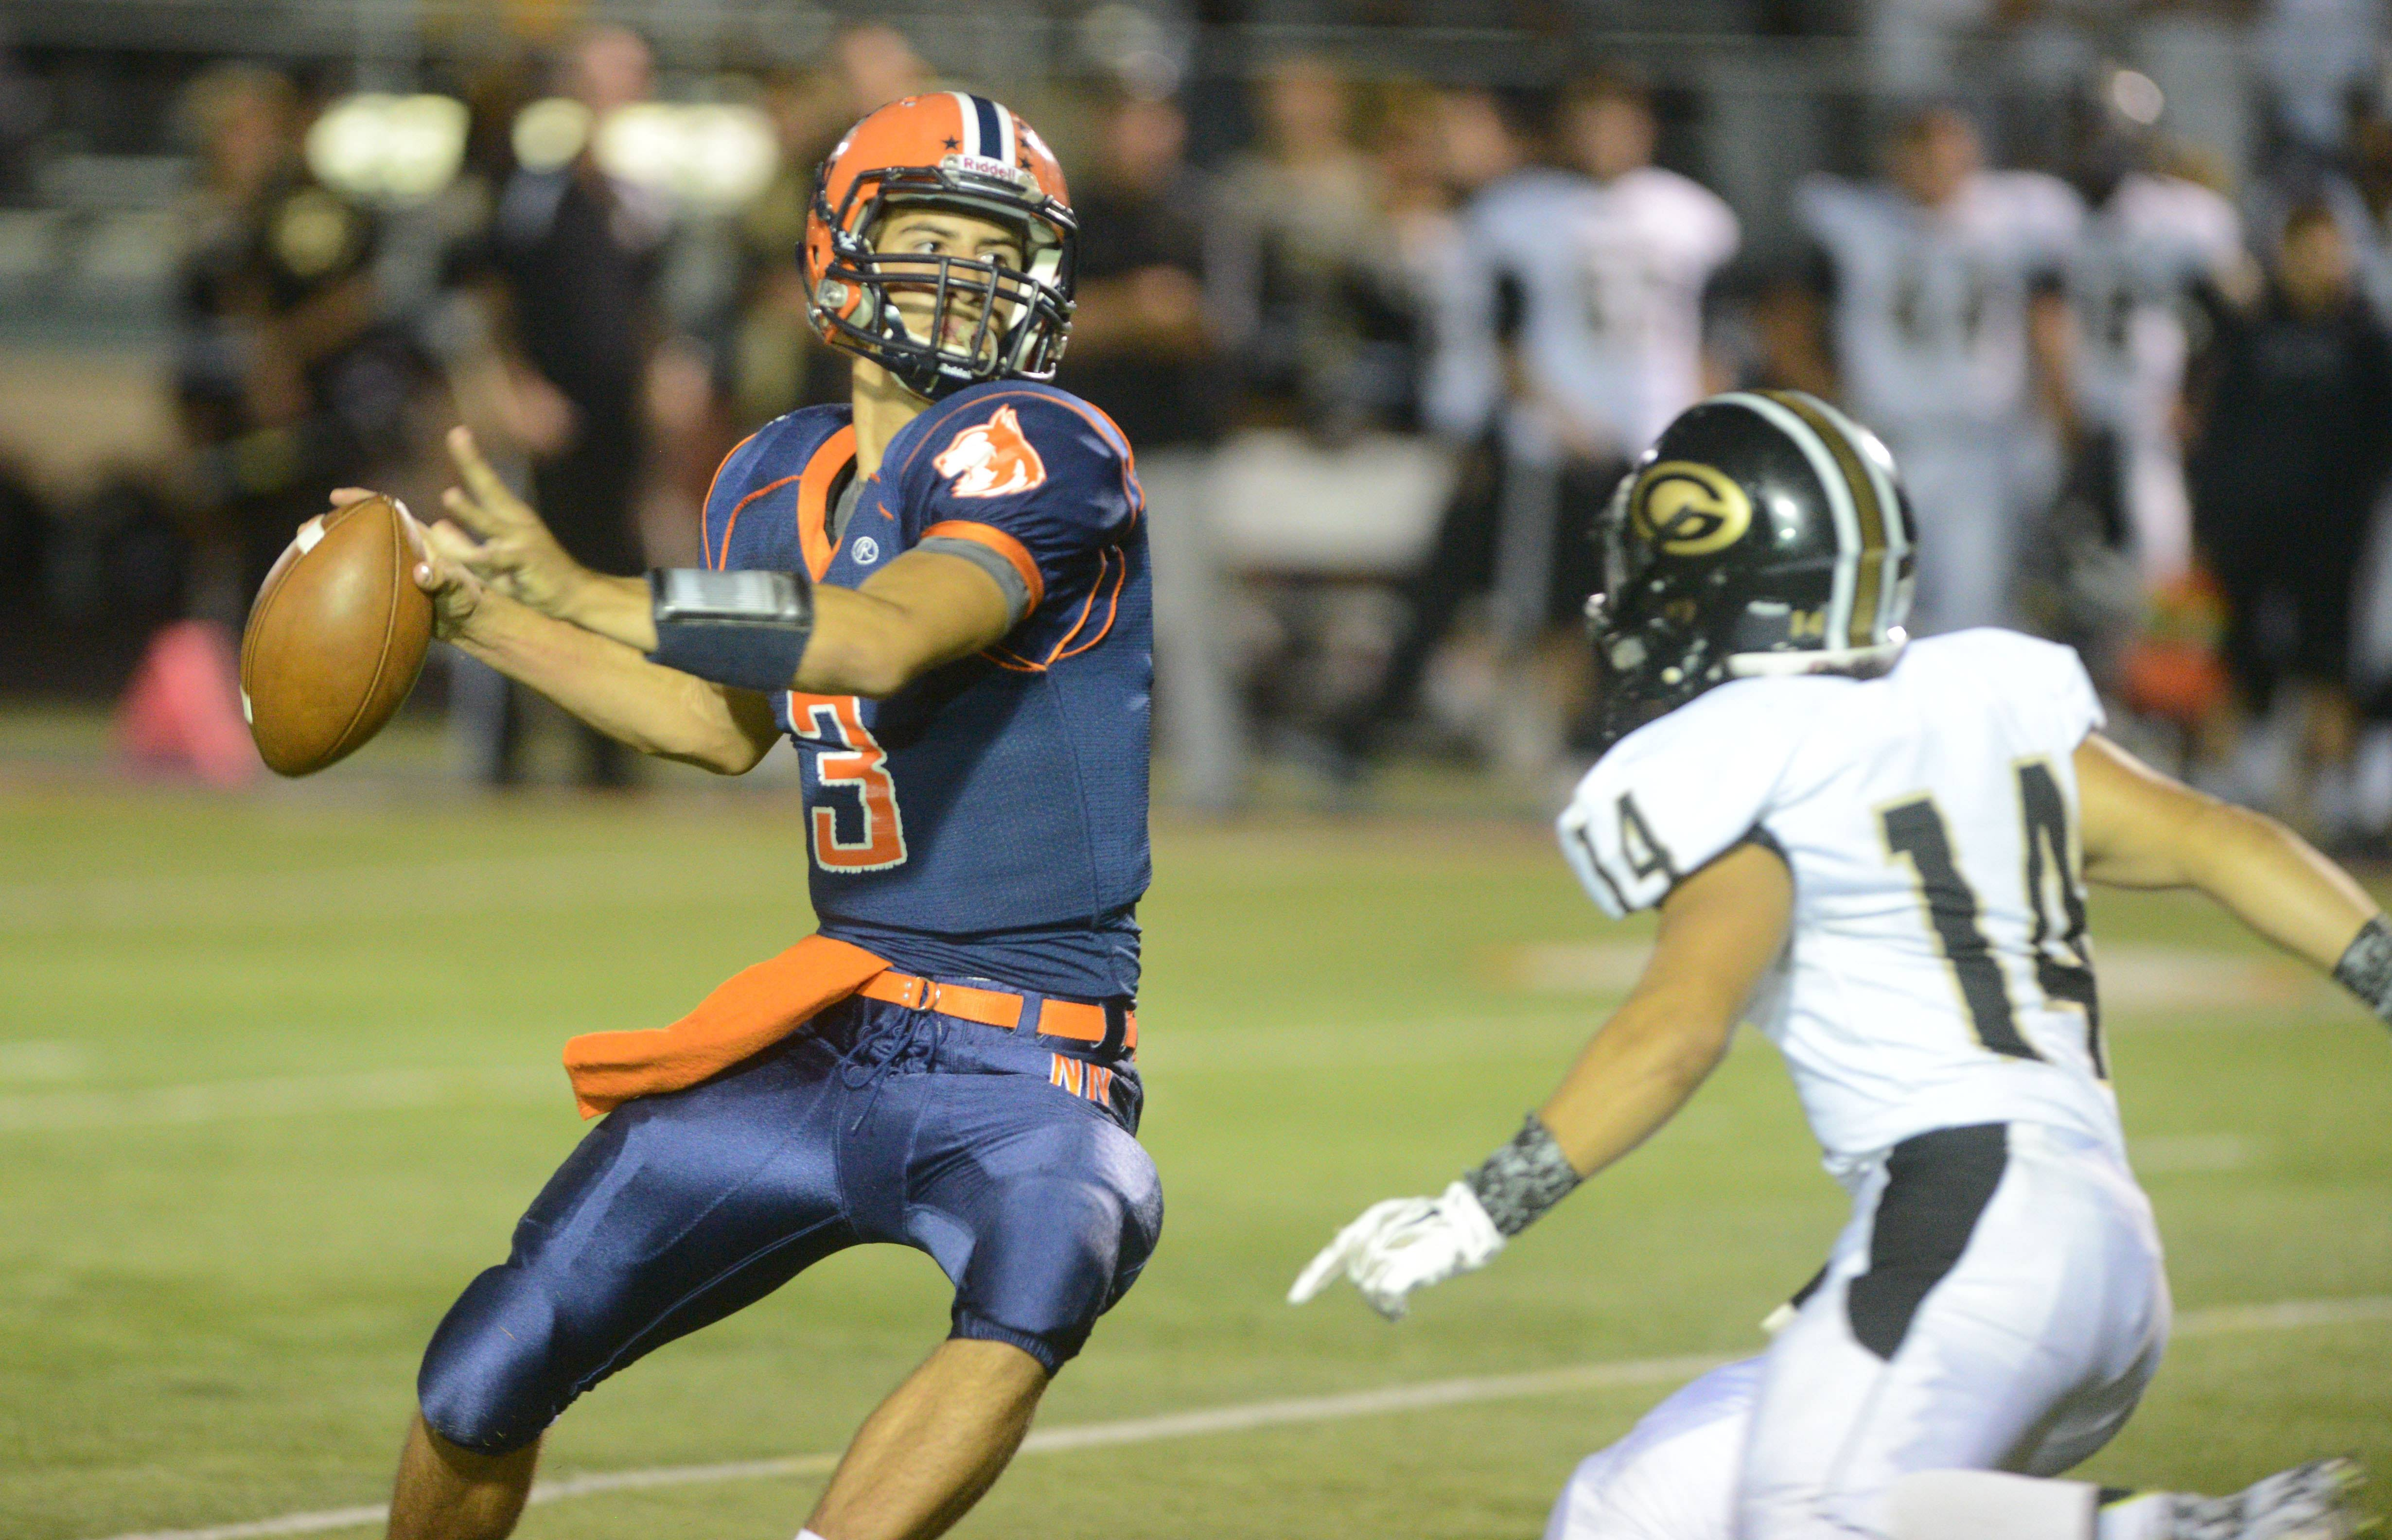 Chris Gajcak of Naperville North looks to pass as Phil Partipilo of Glenbard North moves in.